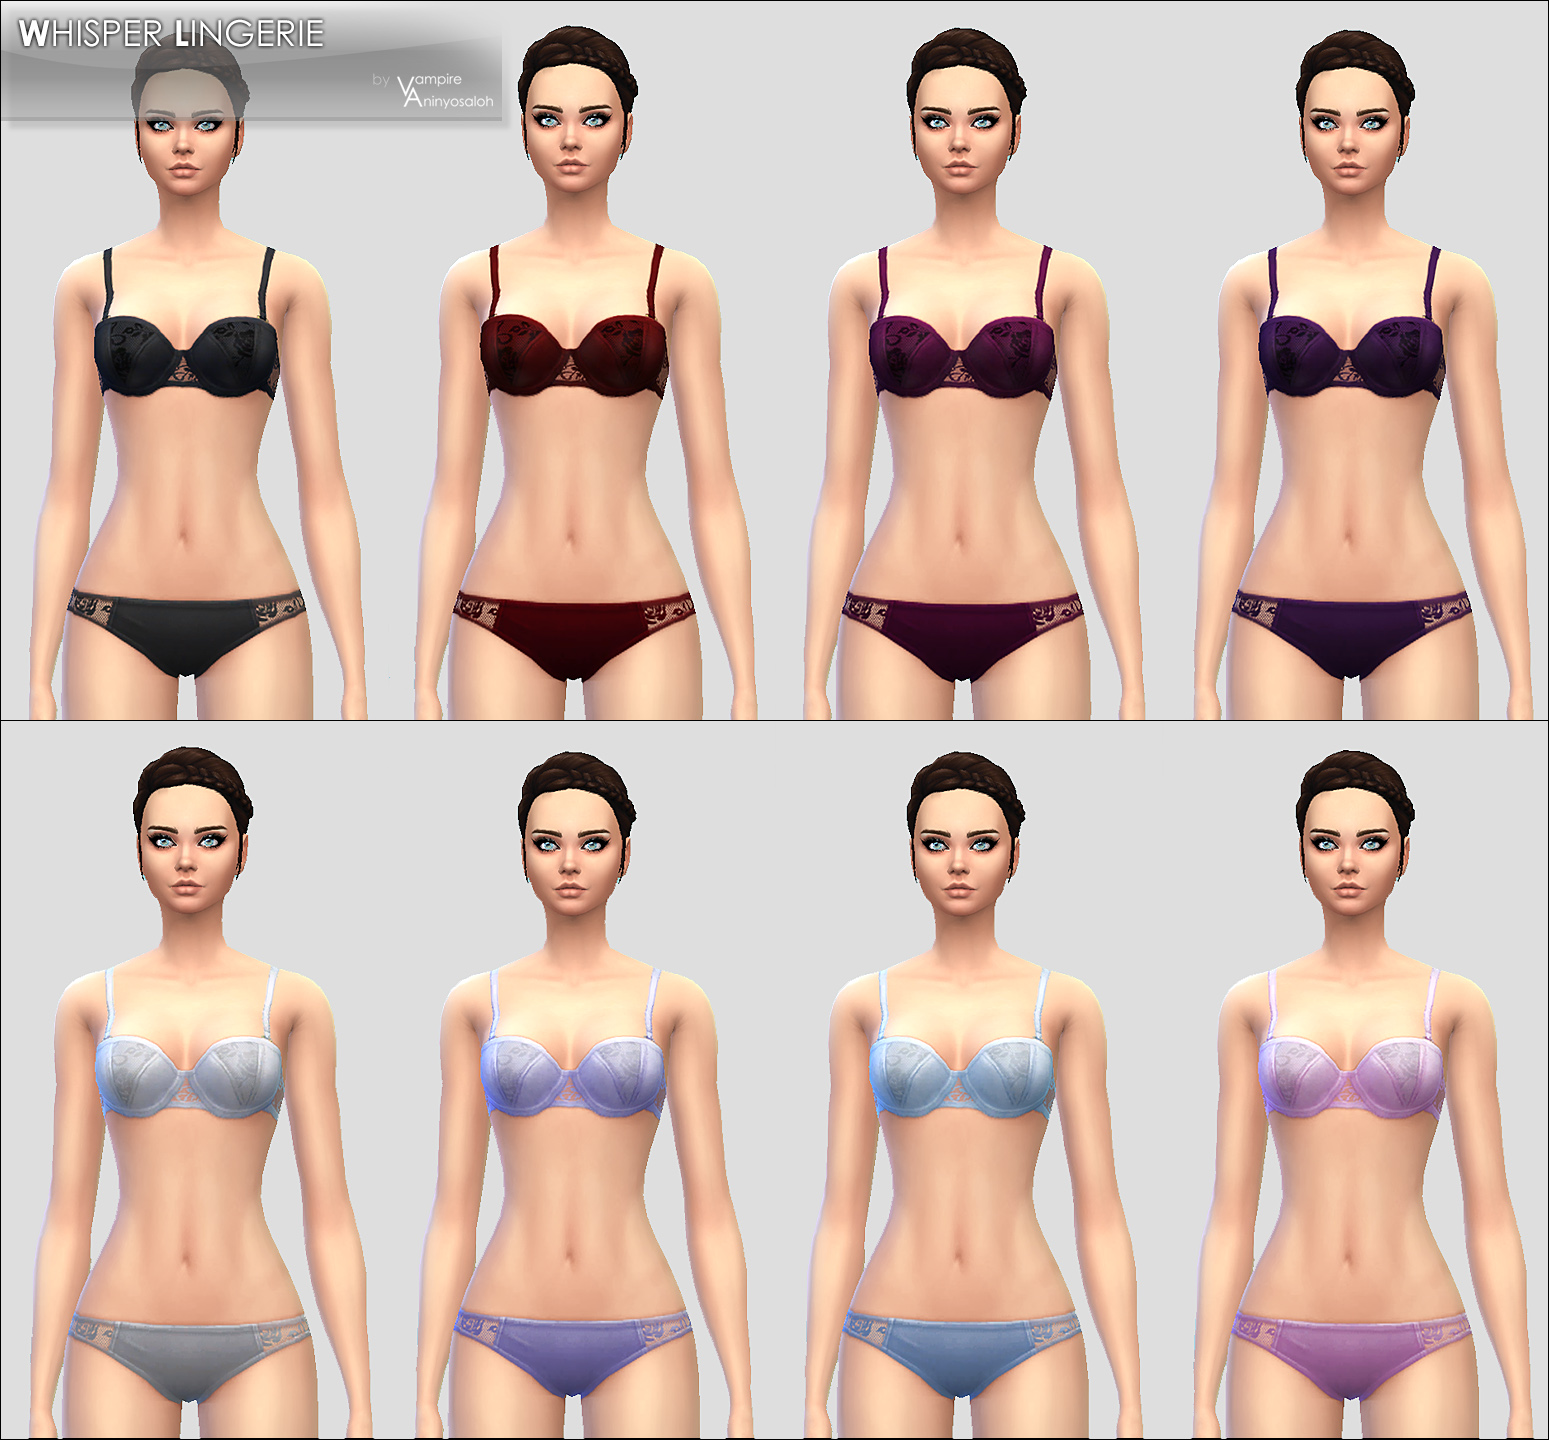 Whisper Lingerie -8 colors- by Vampire_aninyosaloh